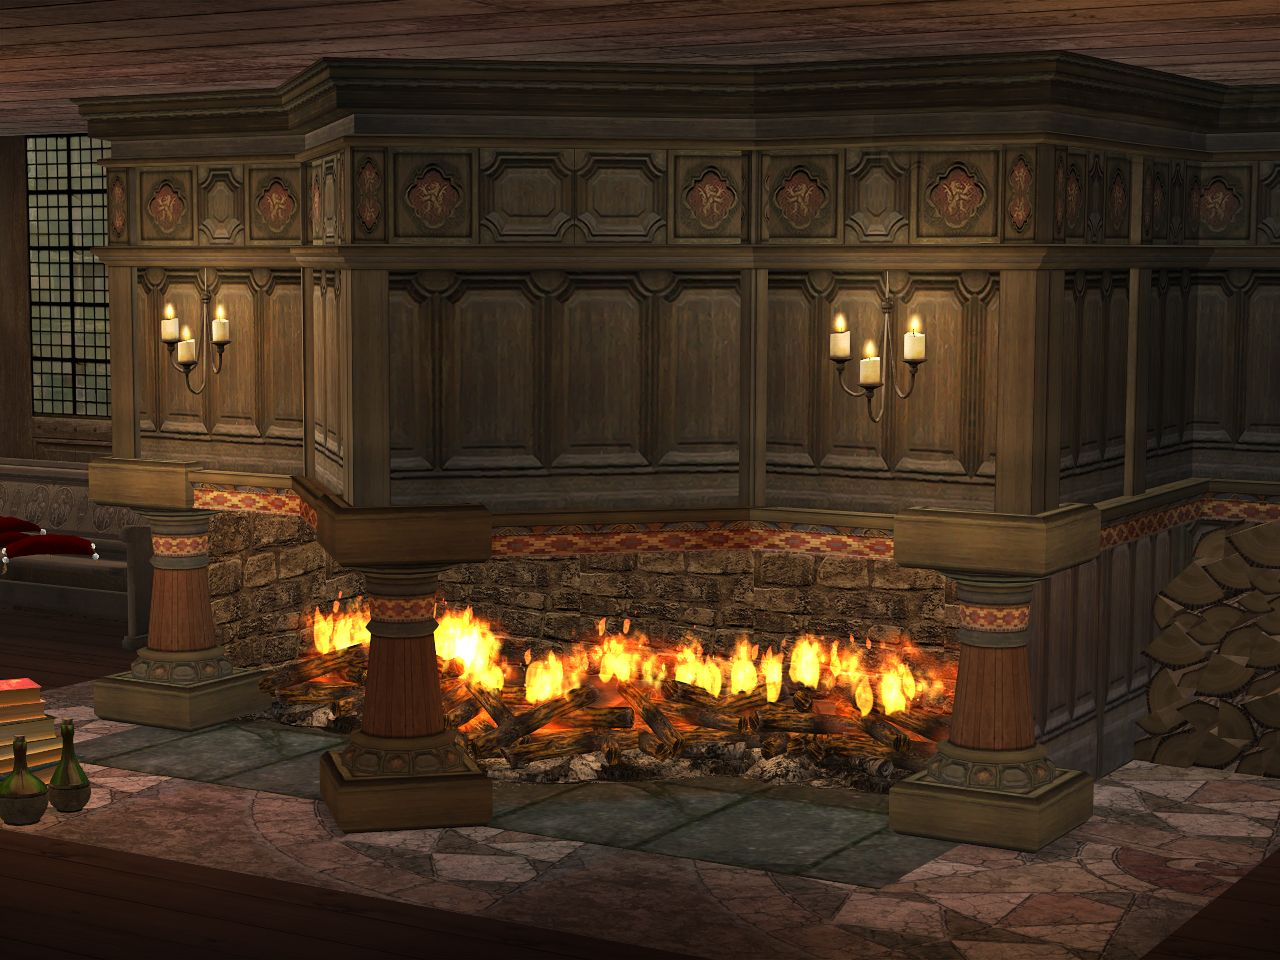 http://julsfels.tumblr.com/post/124578443439/the-penrhyn-fireplace-set-14-built-in-fireplaces